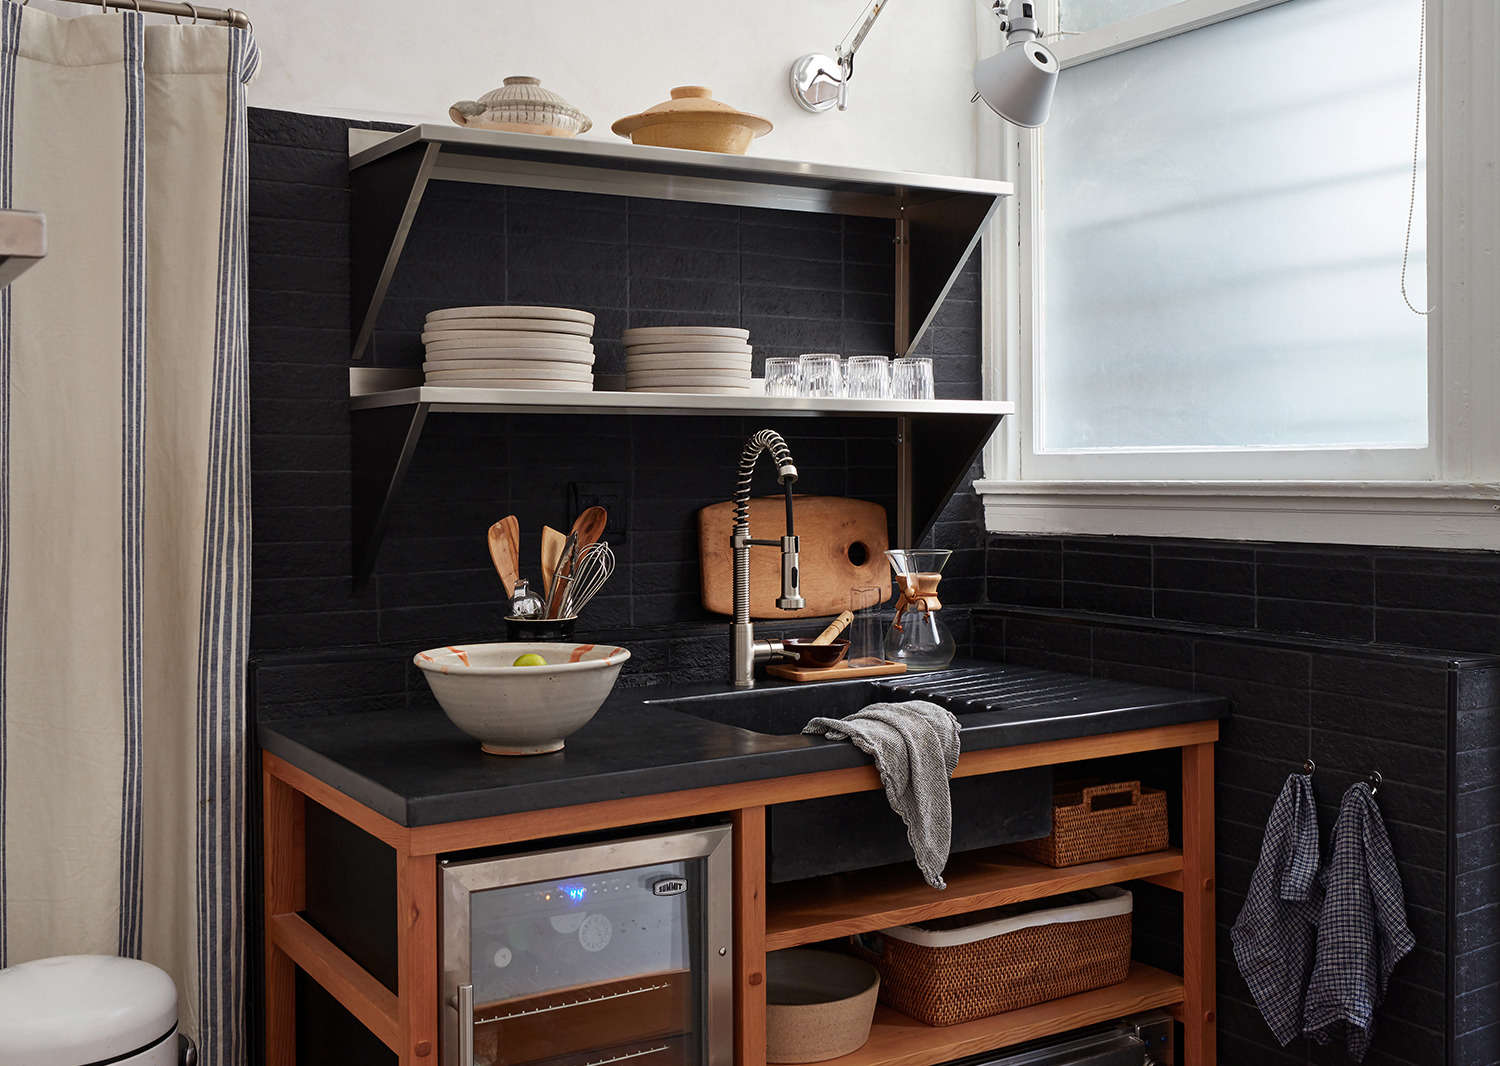 Steal This Look: A Small, Chic Kitchenette for a Creative Studio in SF